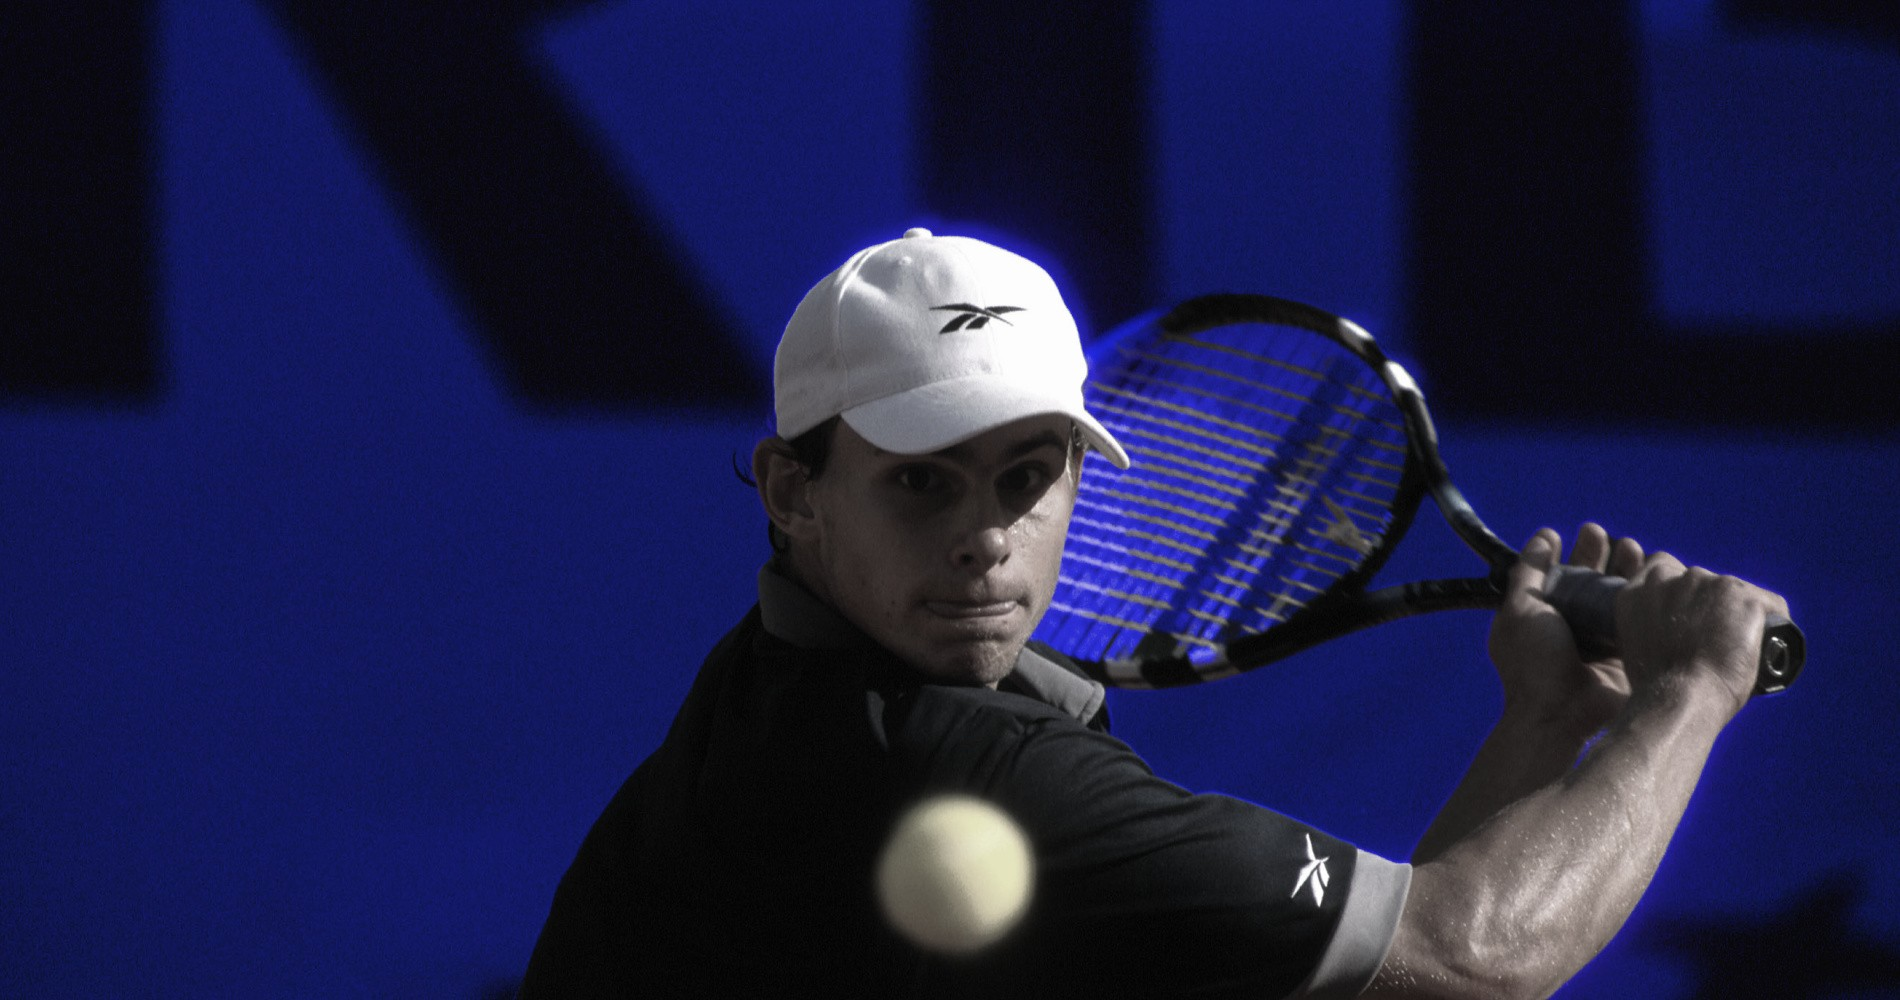 Andy Roddick, On this day